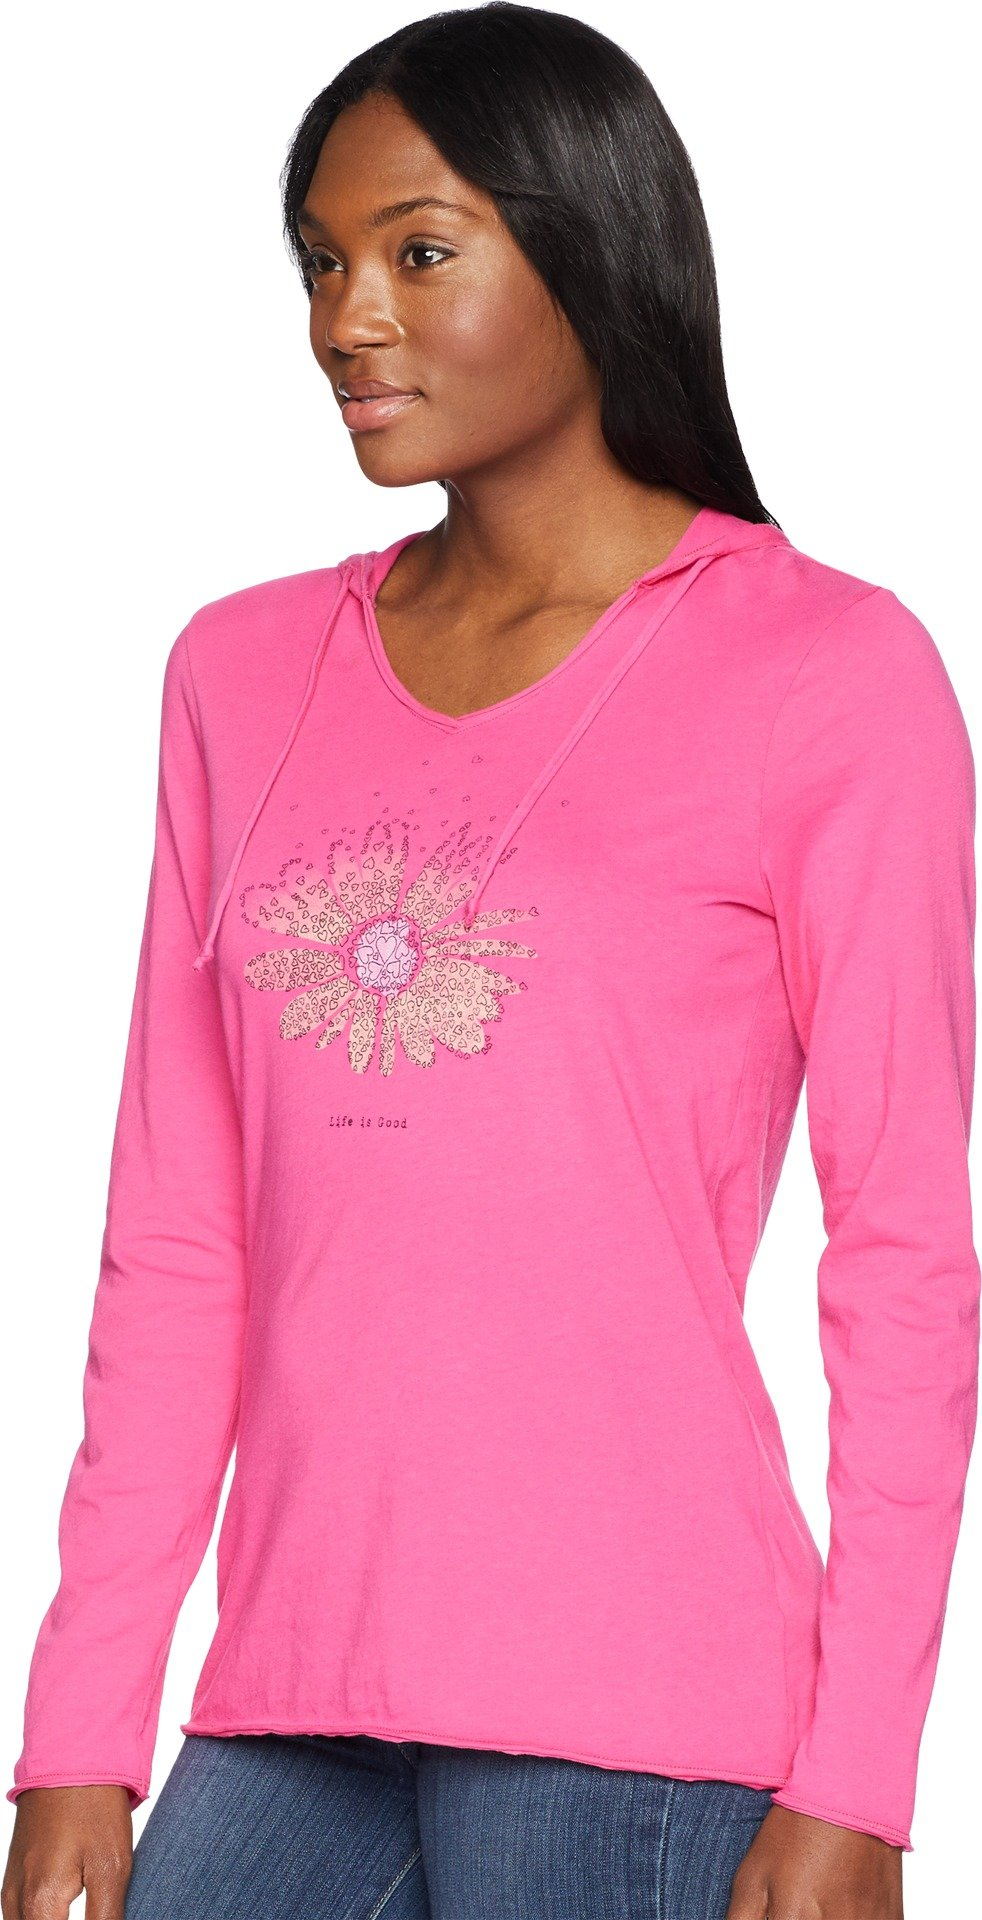 Life is Good Womens Hooded Smooth Longsleeve tee Daisy Love, Fiesta Pink, Large by Life is Good (Image #2)